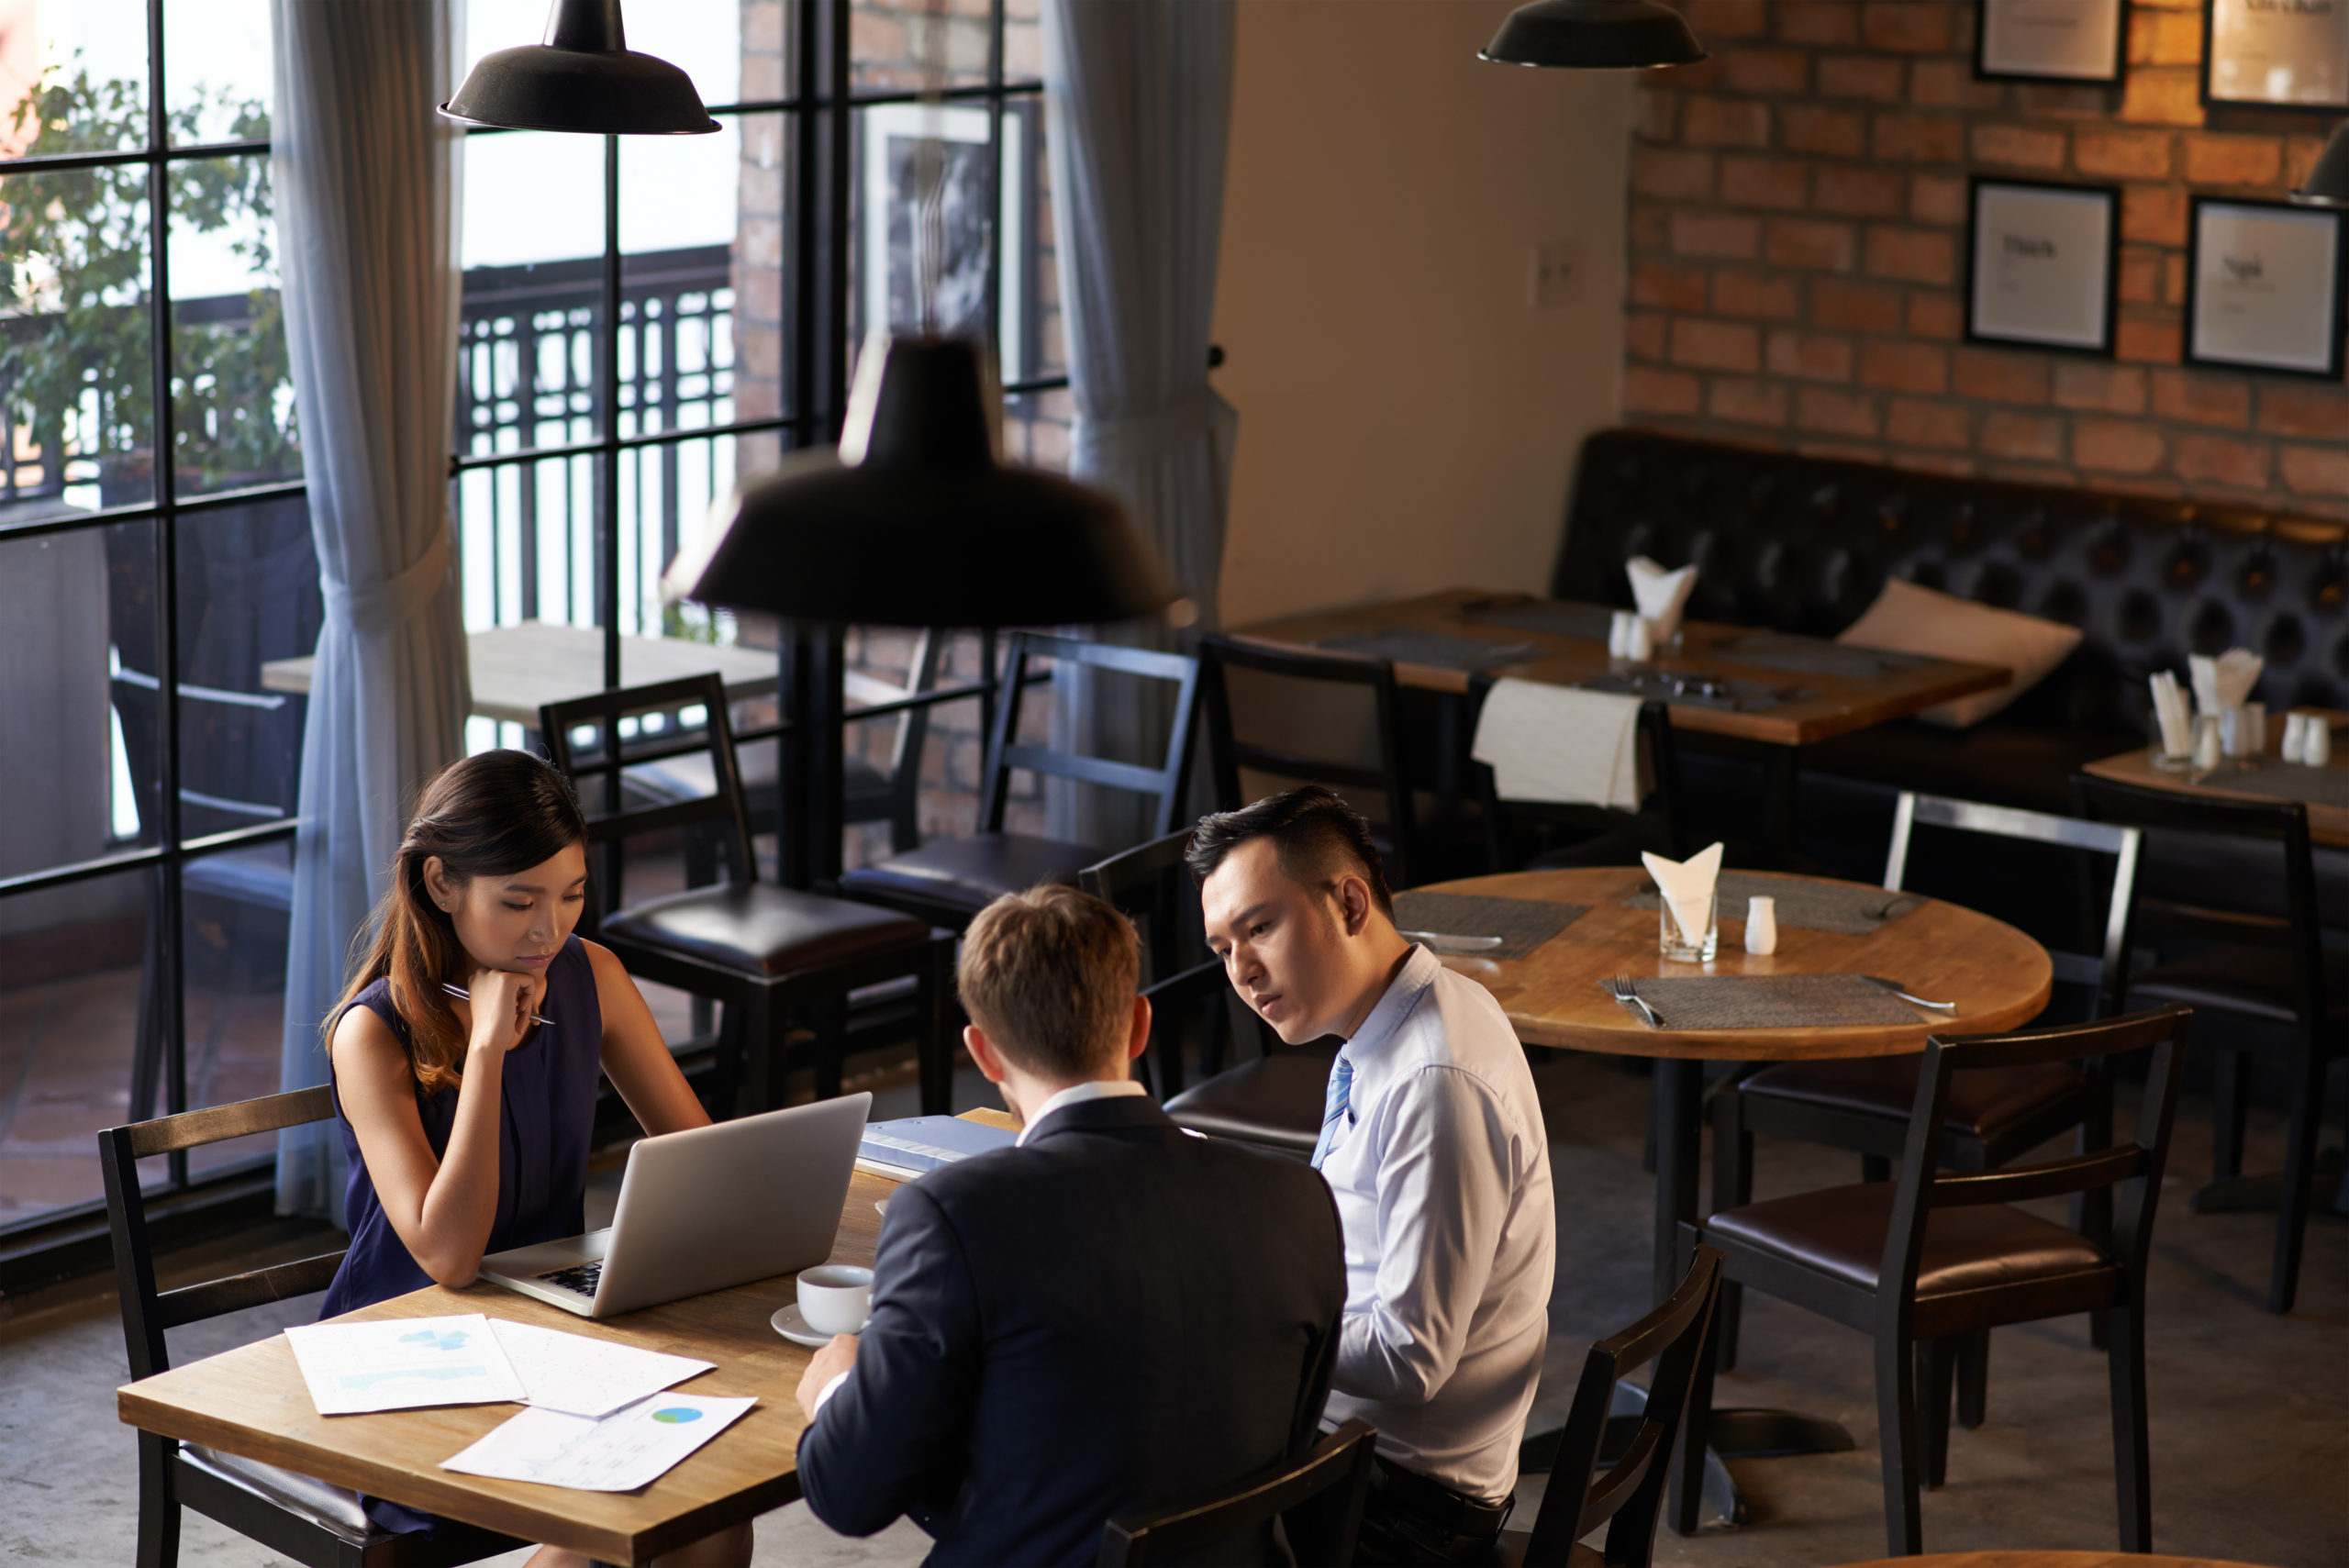 Restaurant labor management software is an affordable way to improve scheduling, payroll, and tax accuracy.